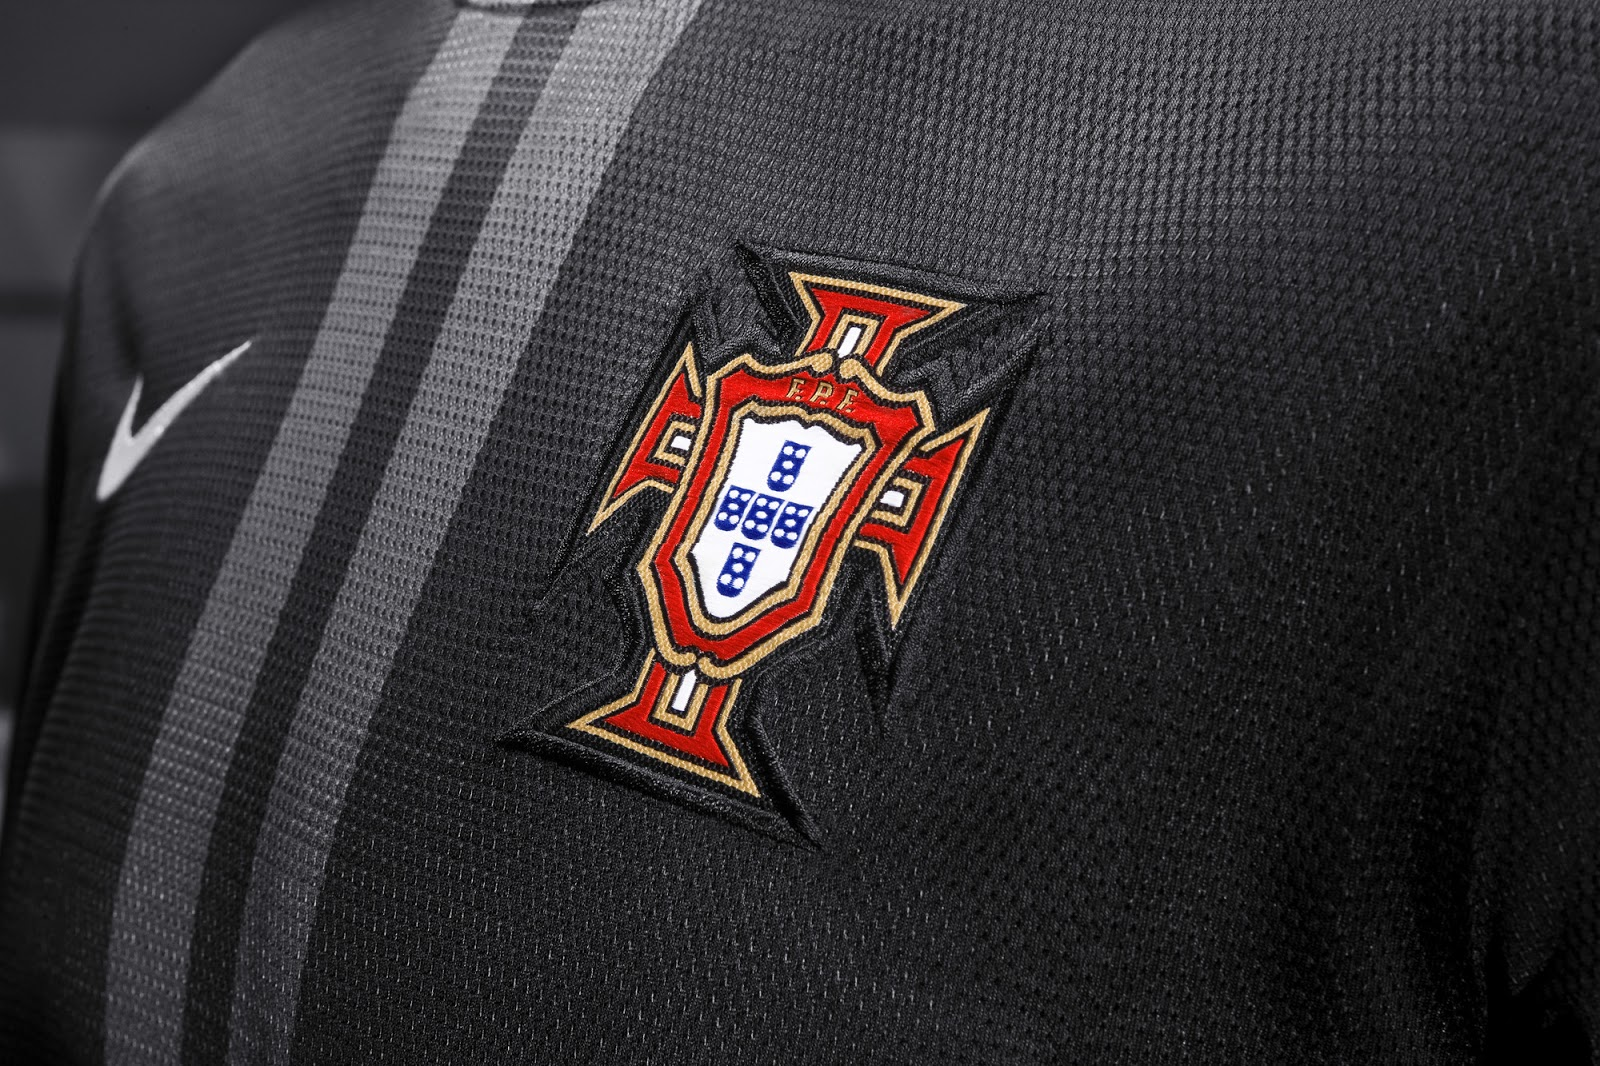 Portugal 13/14 Nike Away Shirt Released! - Footy Headlines